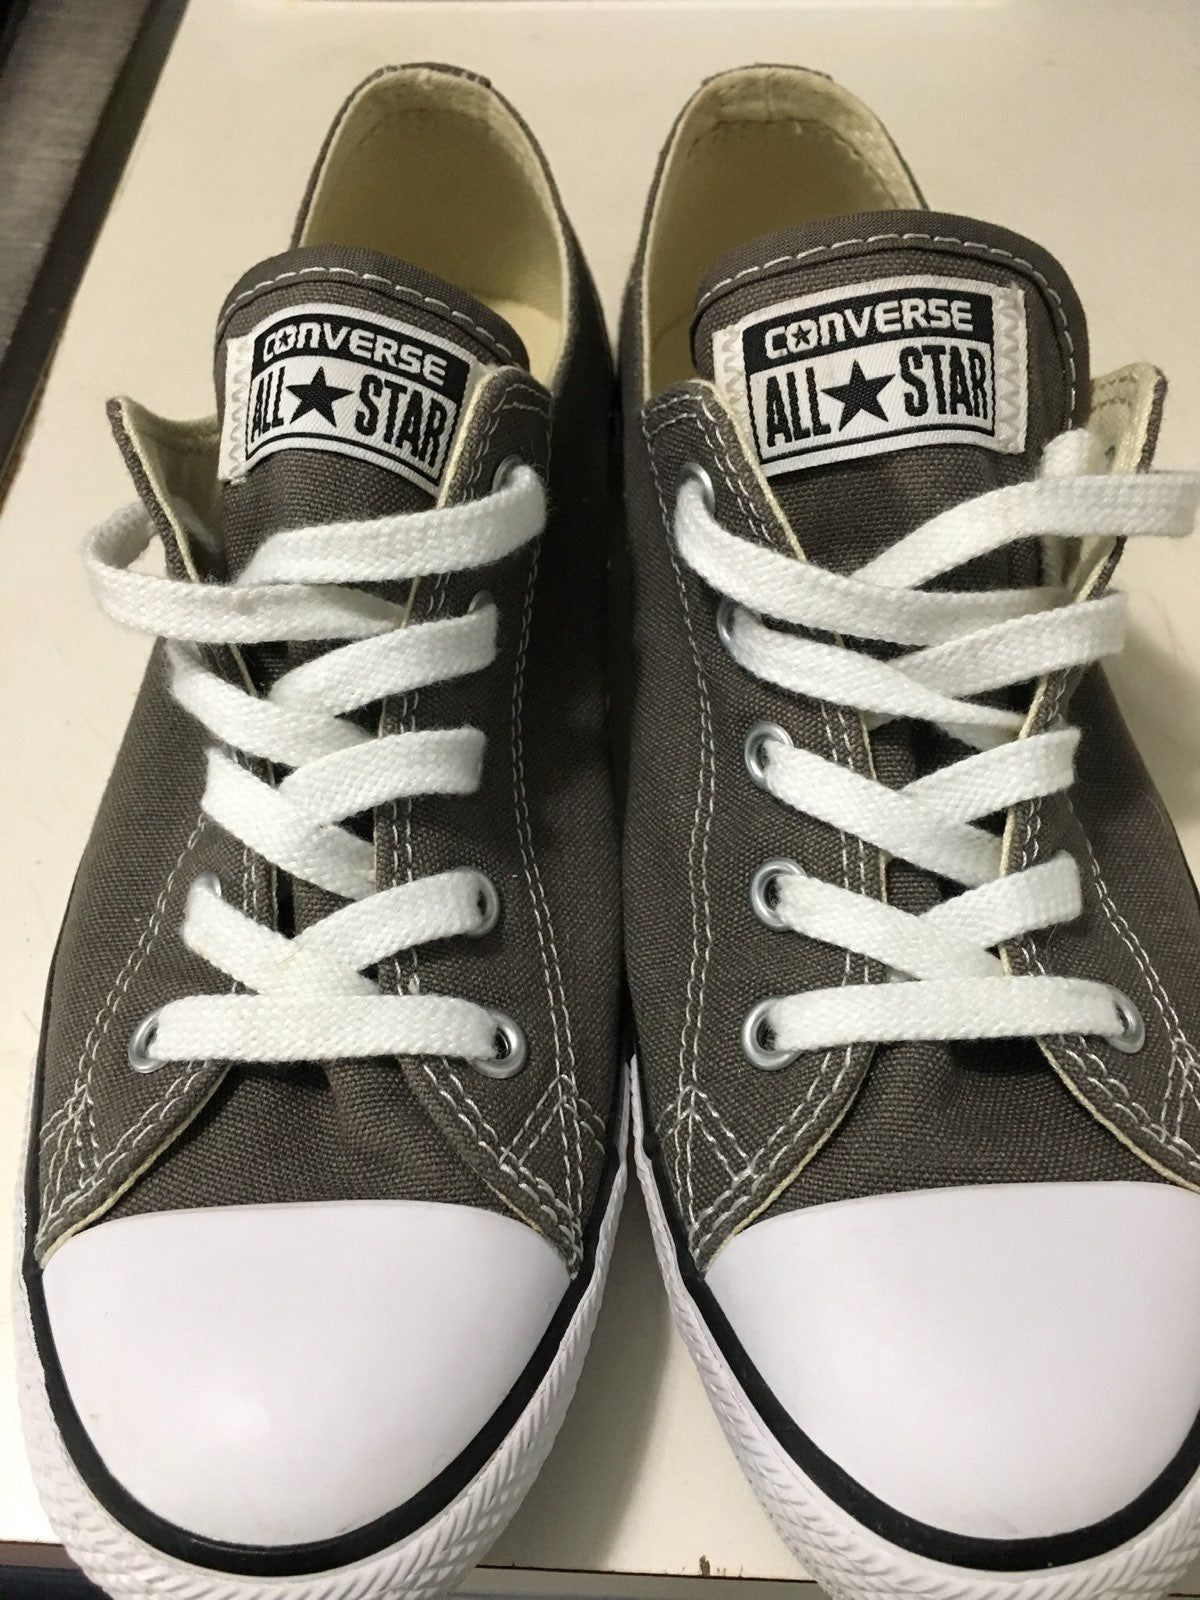 Gray converse size 7. I purchased these